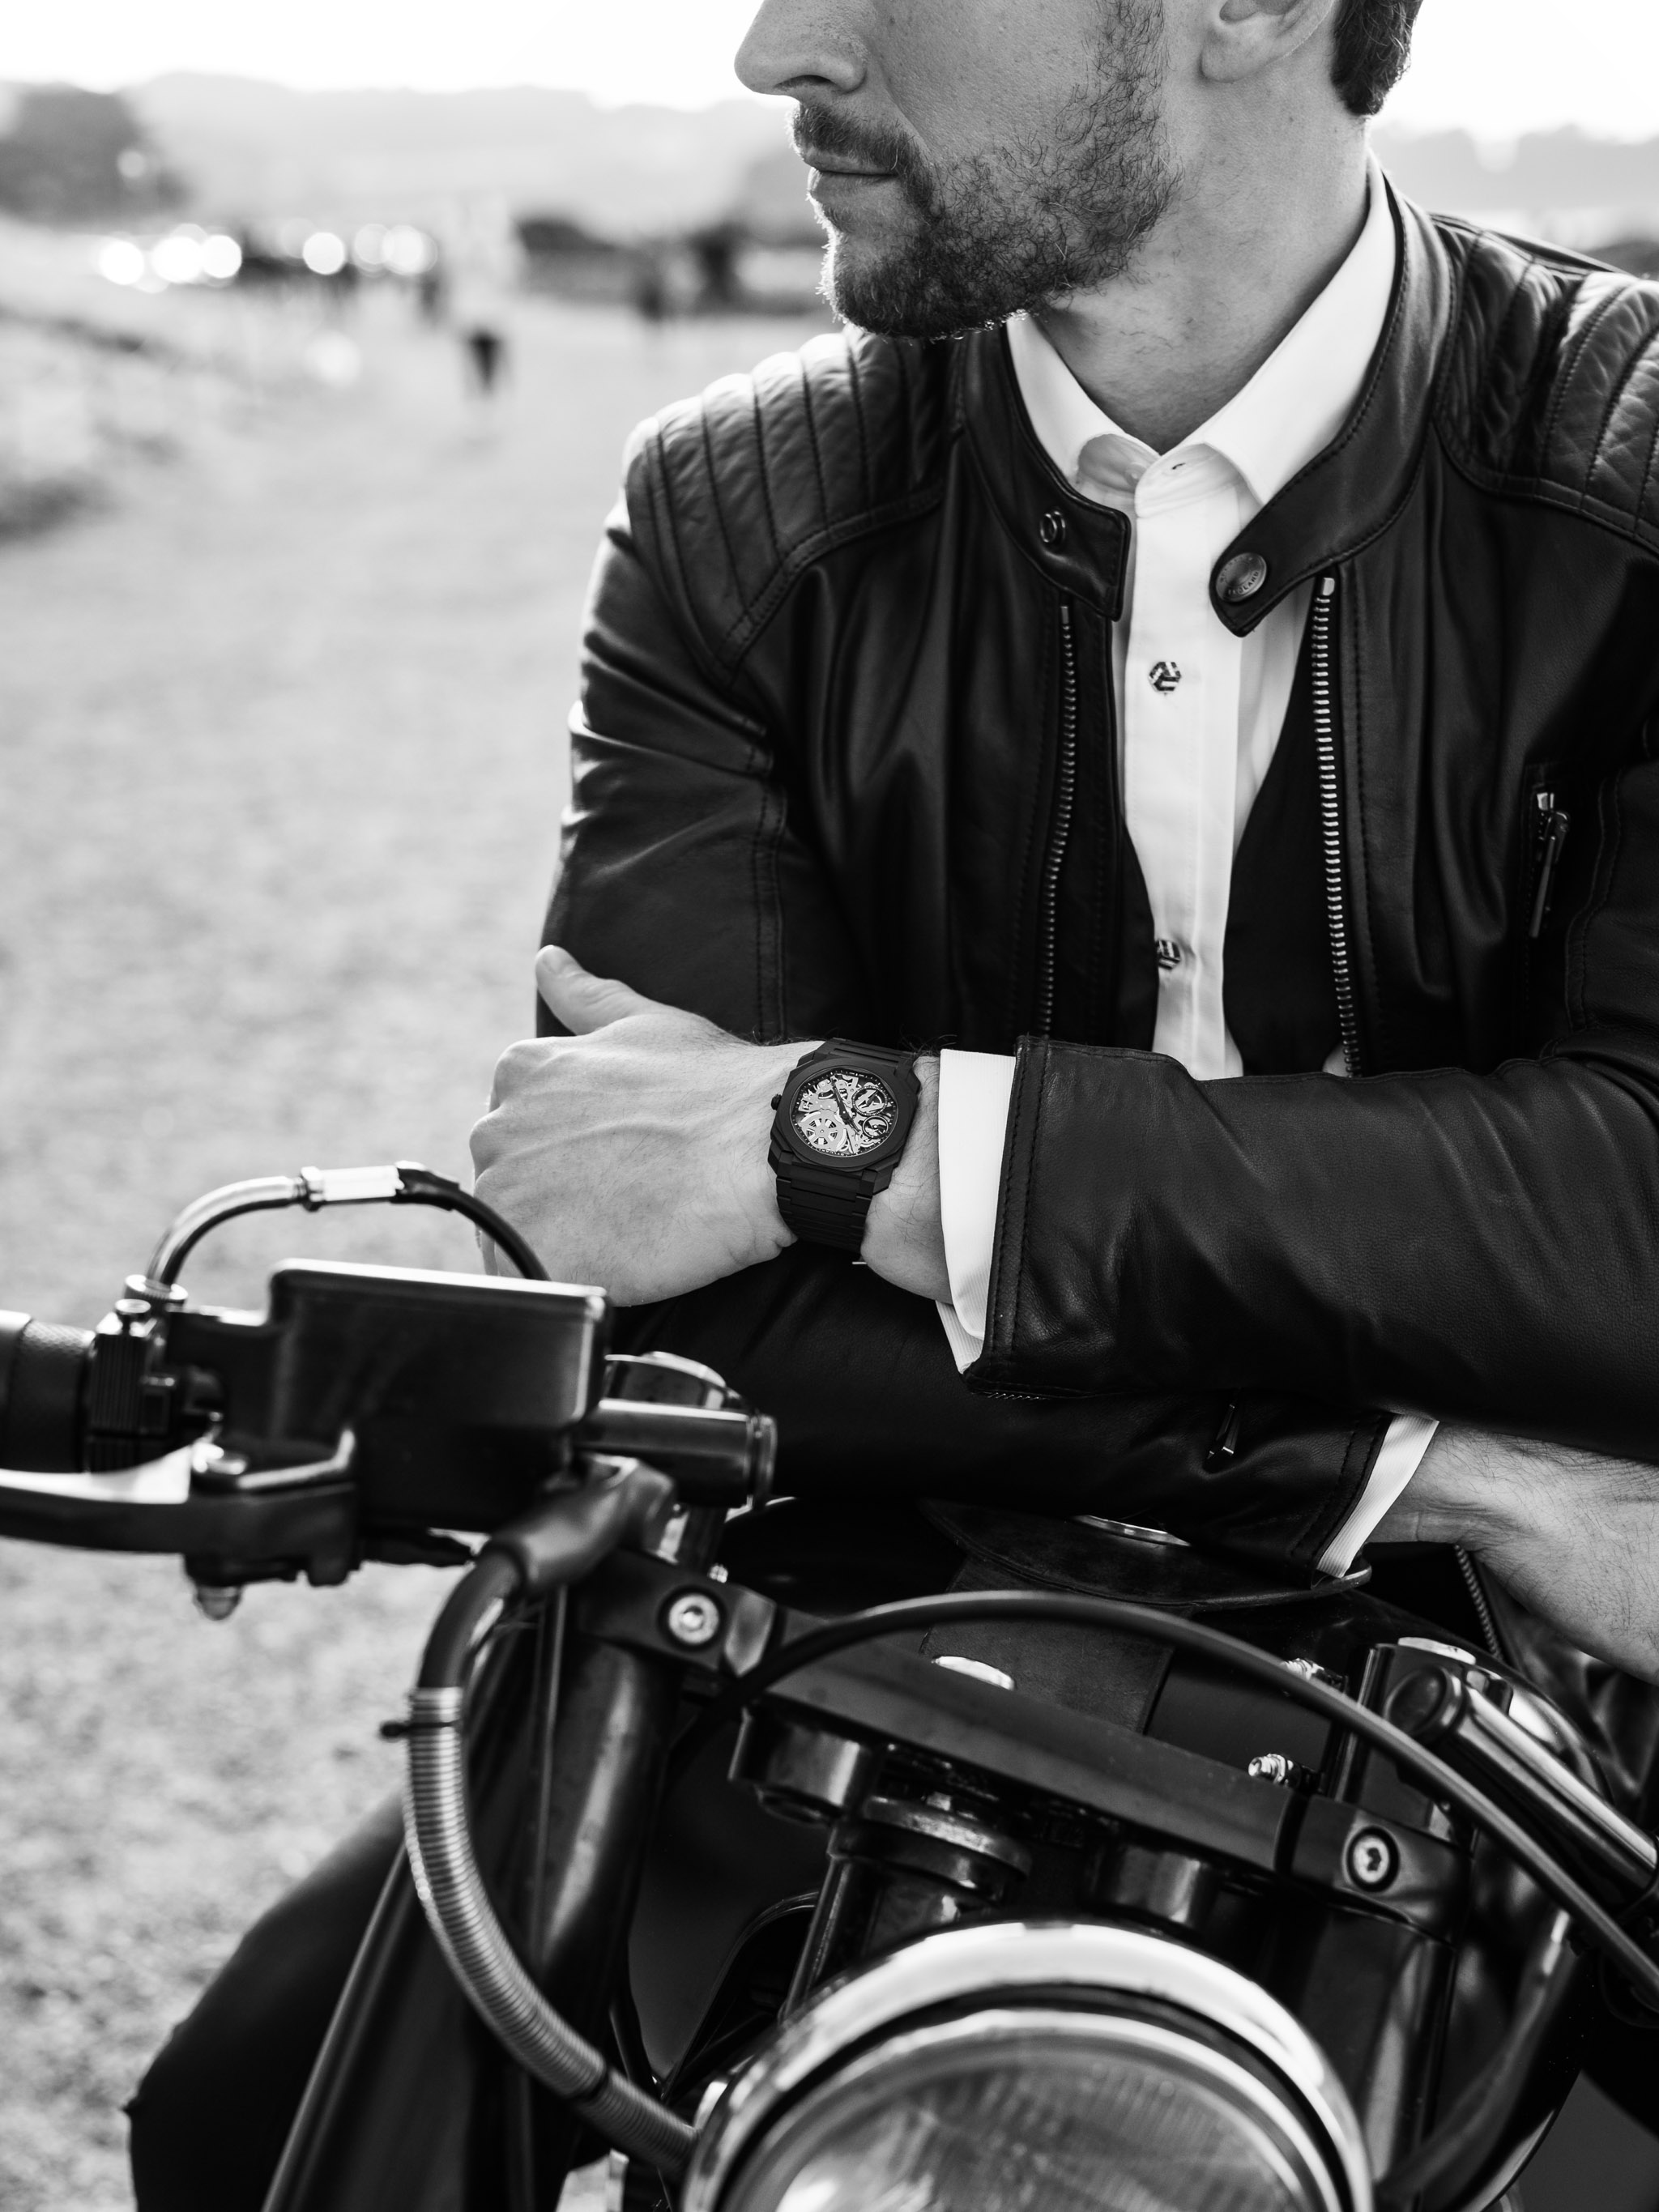 commercial photographer took photo of bell ross watches with motorcycle In San Francisco